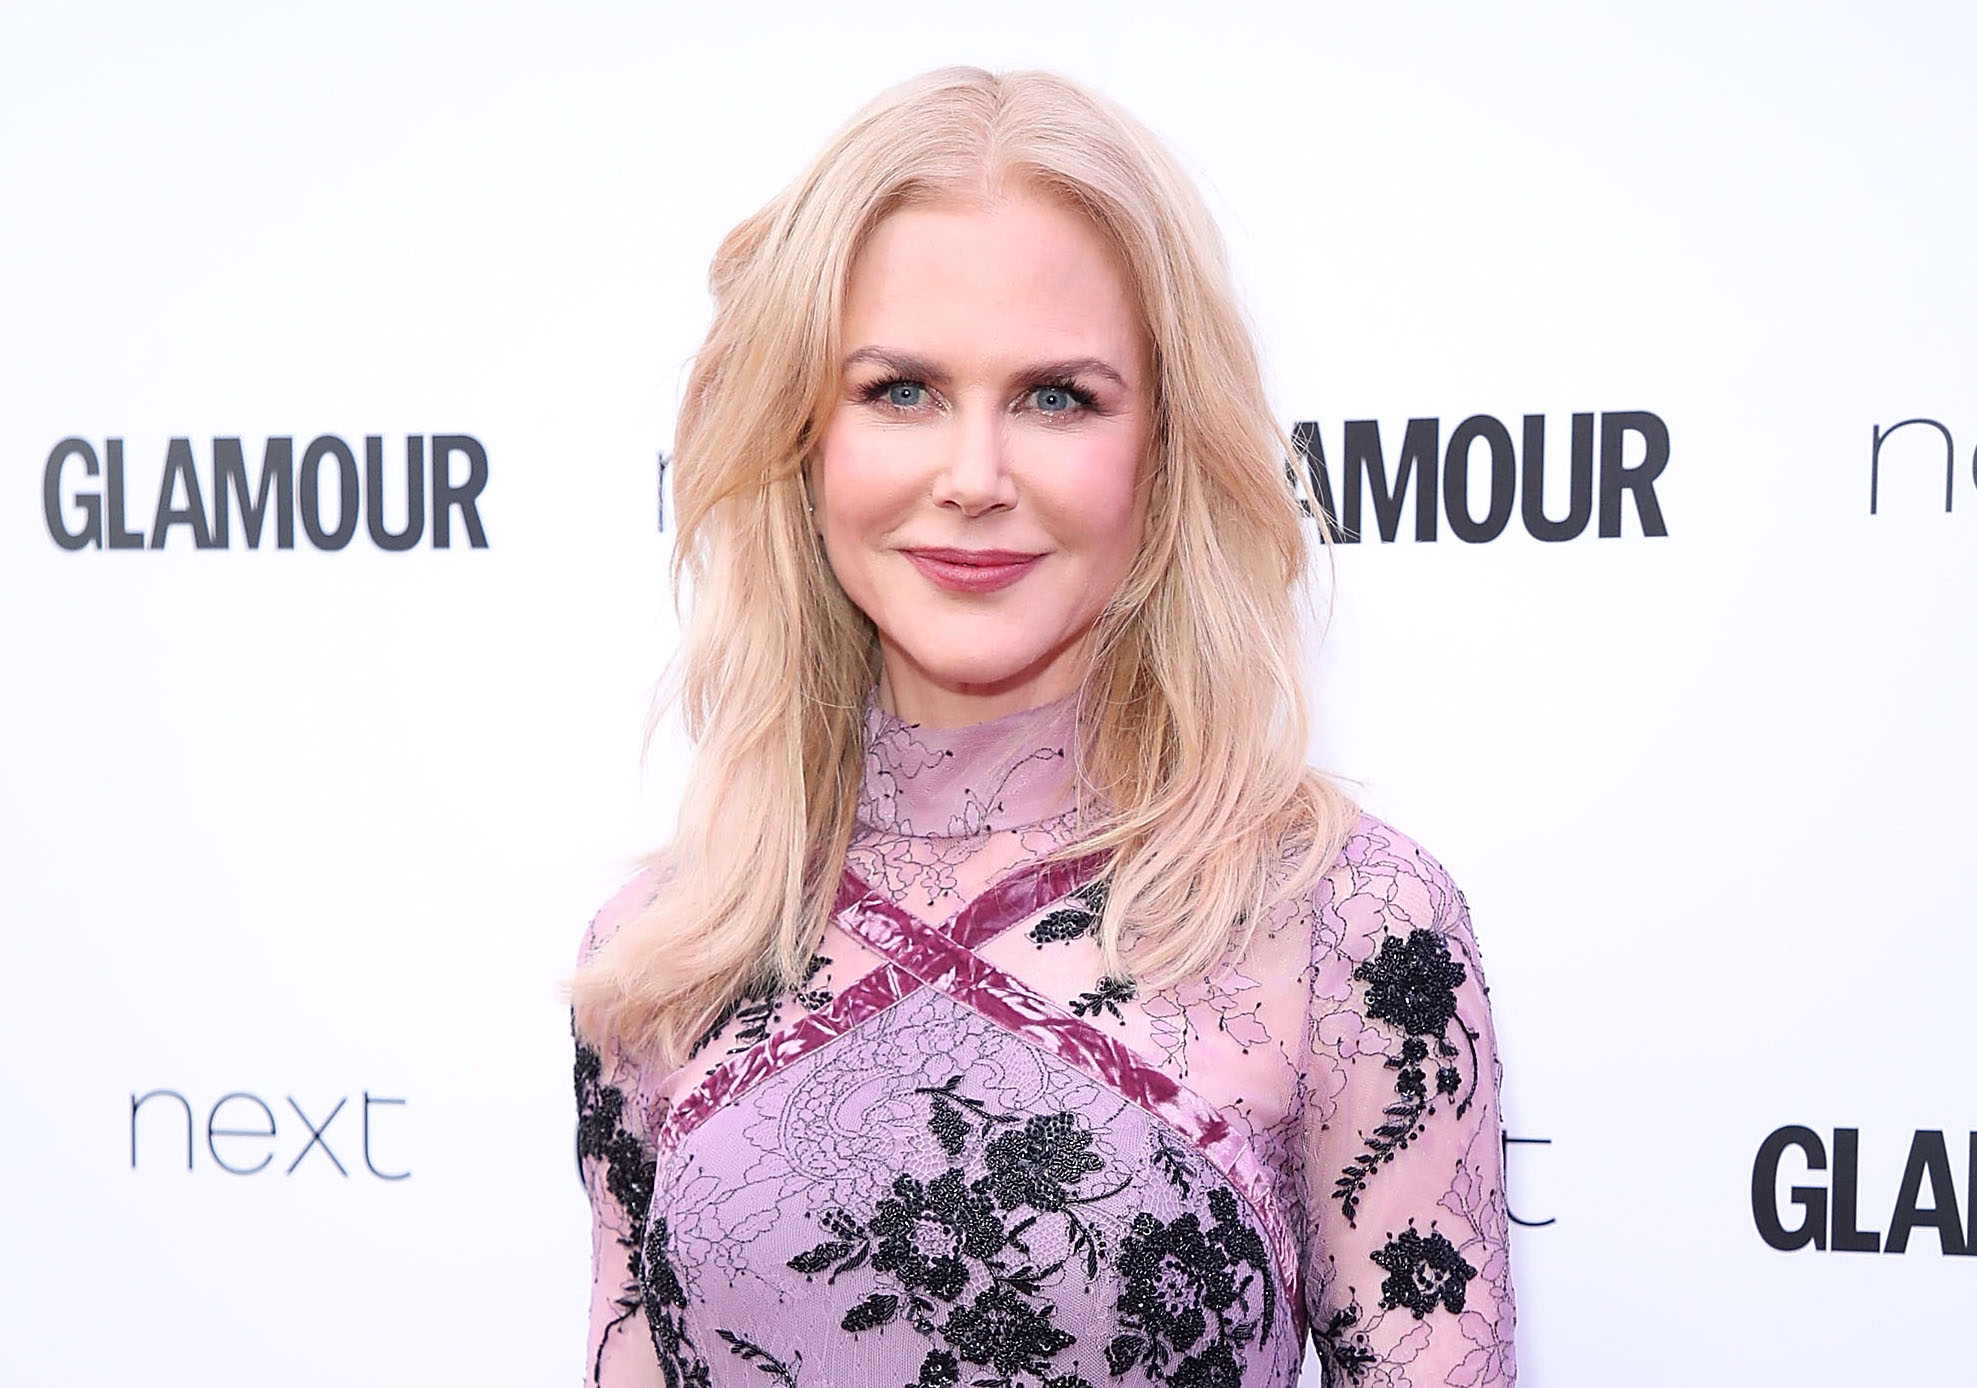 Nicole Kidman Boob Job: Find out Why She Got Her Implants